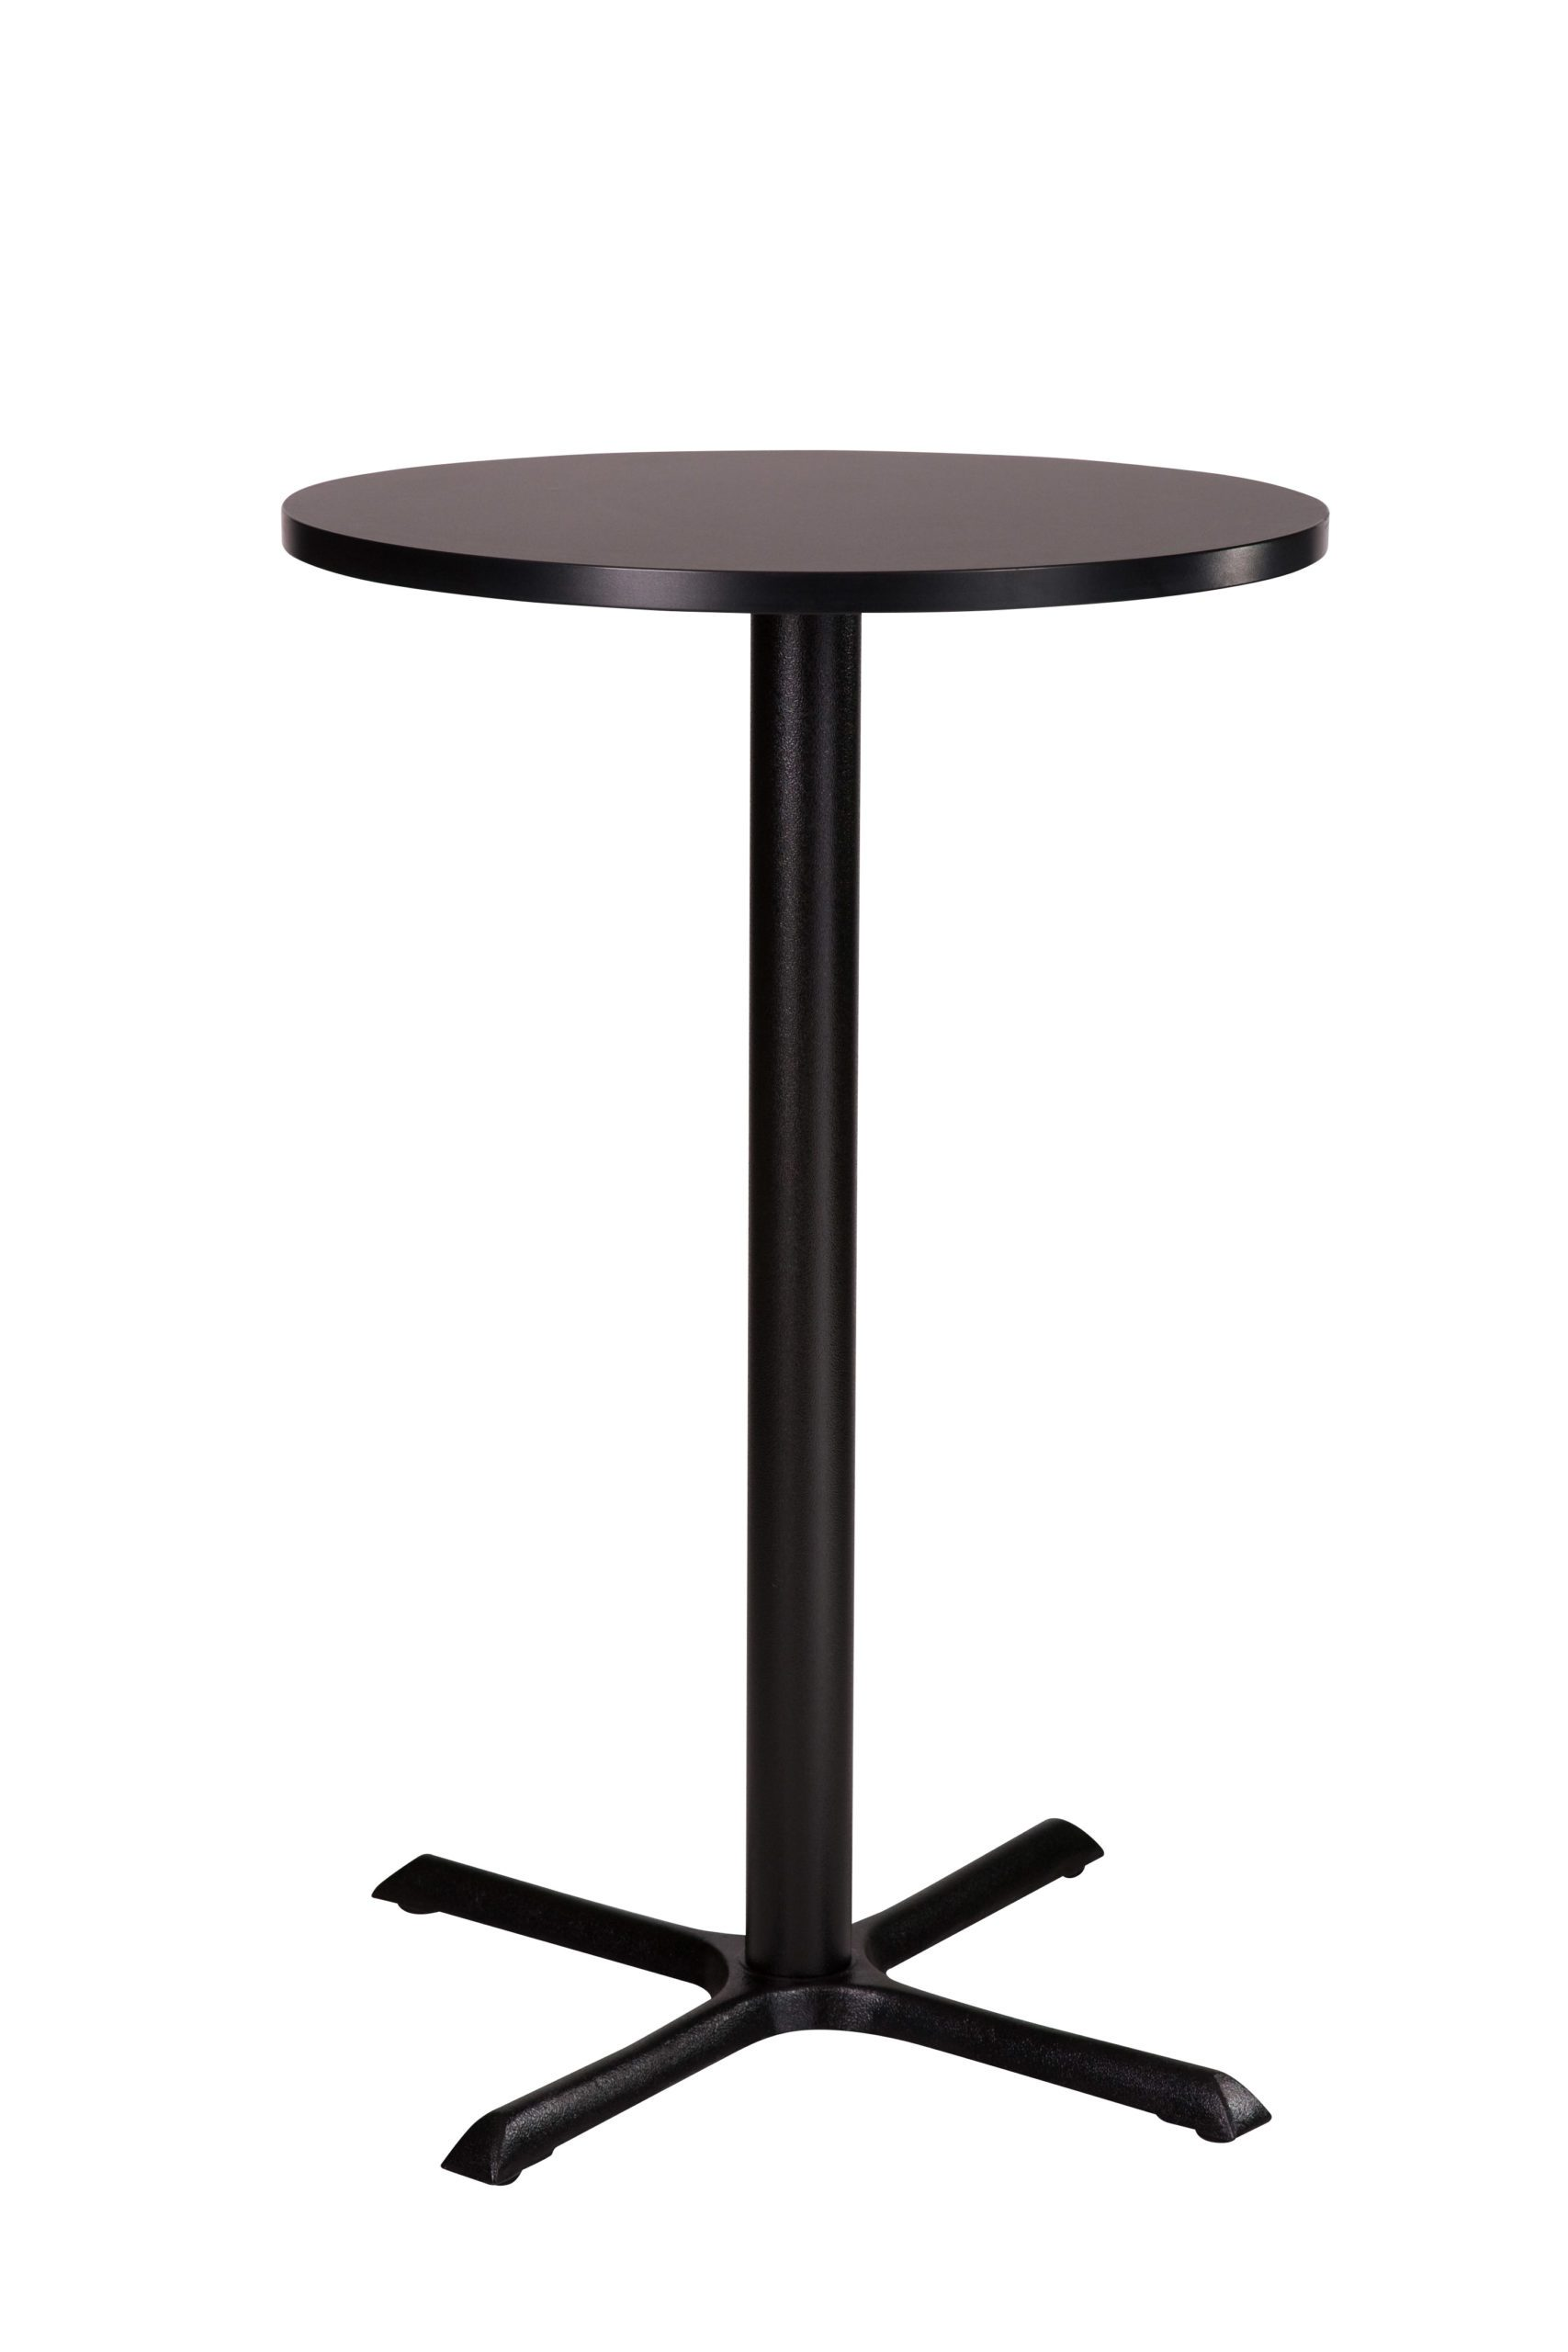 Elliot Black Coffee Table Base Round Solid Wood Top